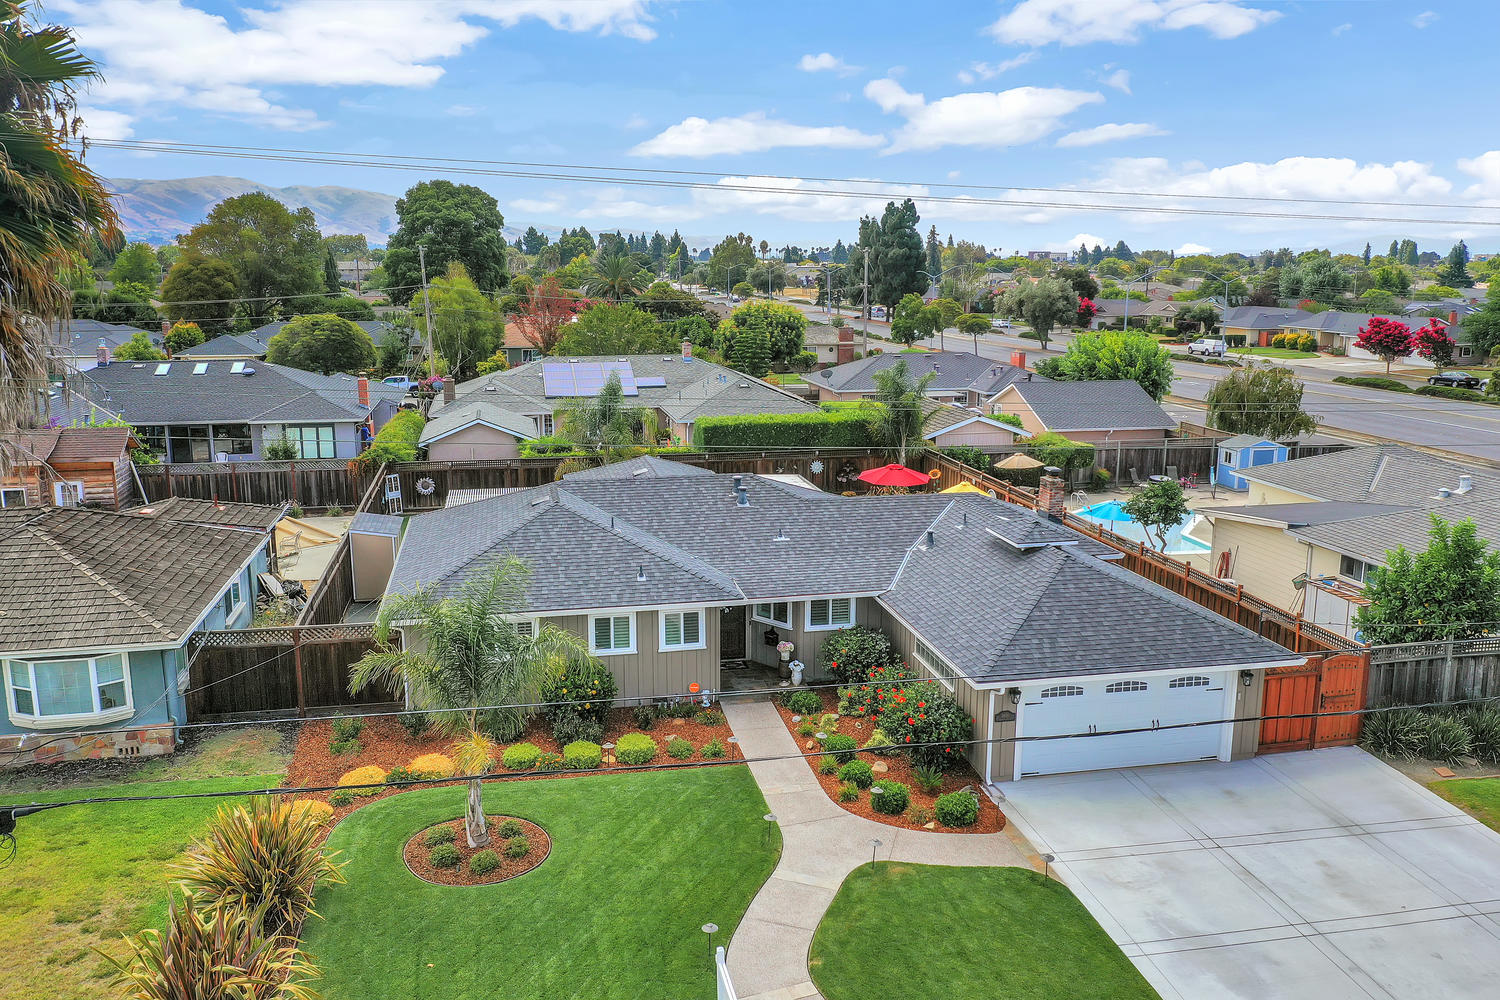 4970 Eggers Dr Fremont CA-Aerial View